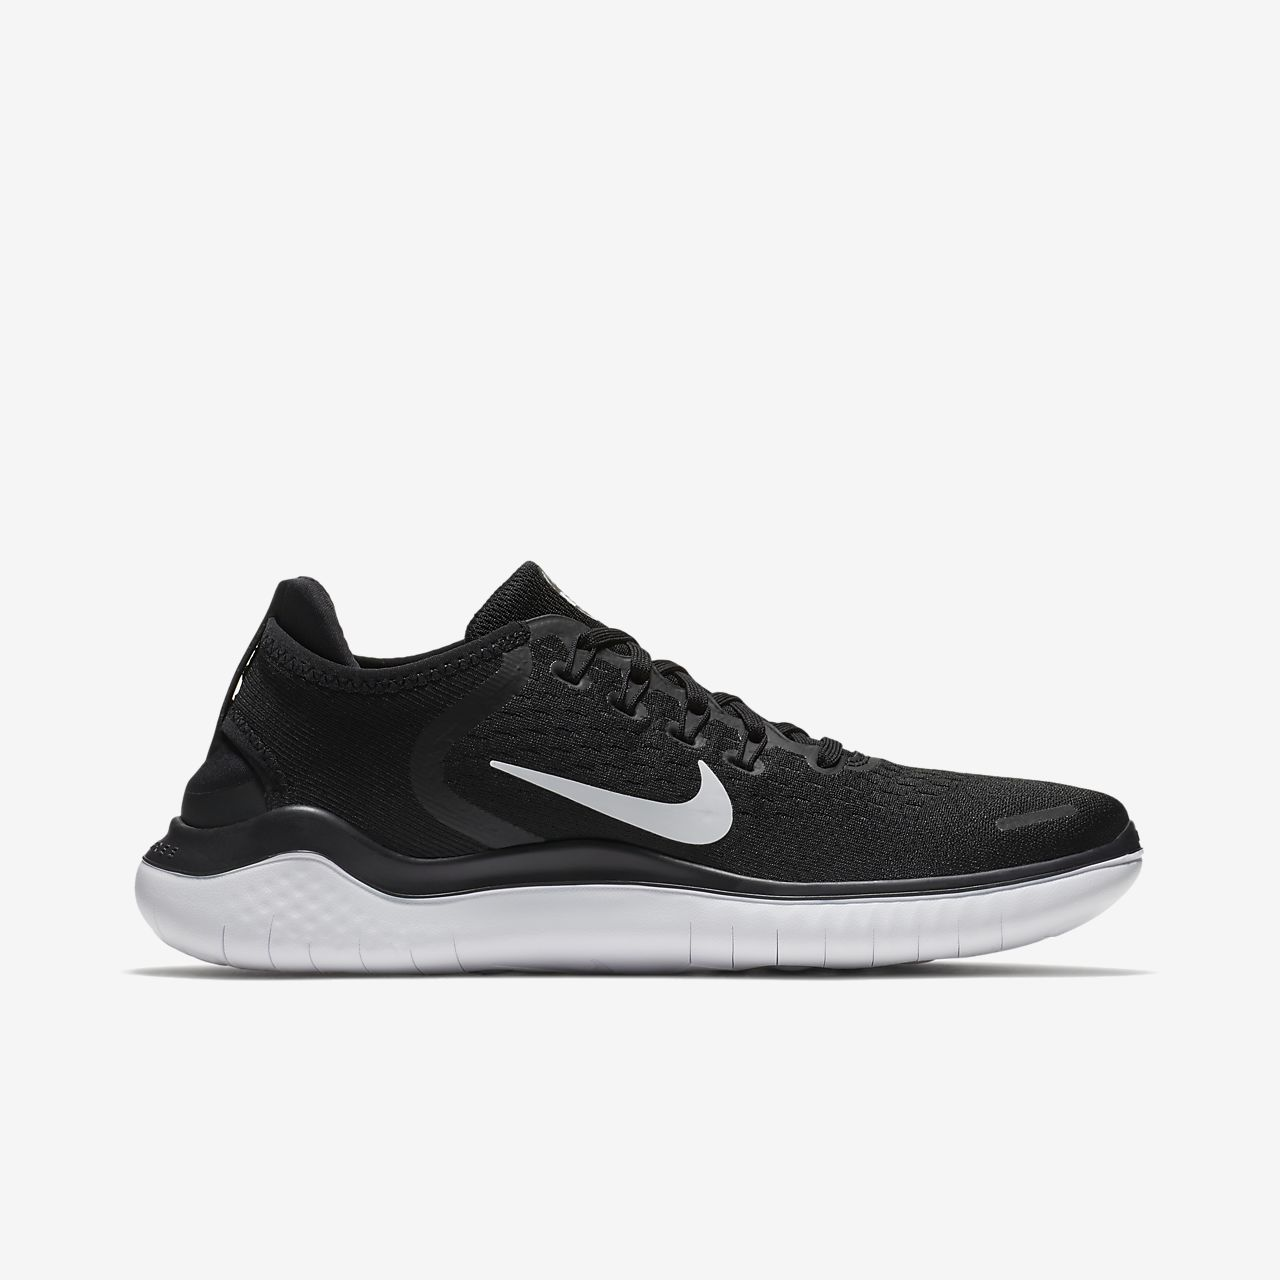 ... Nike Free RN 2018 Men's Running Shoe